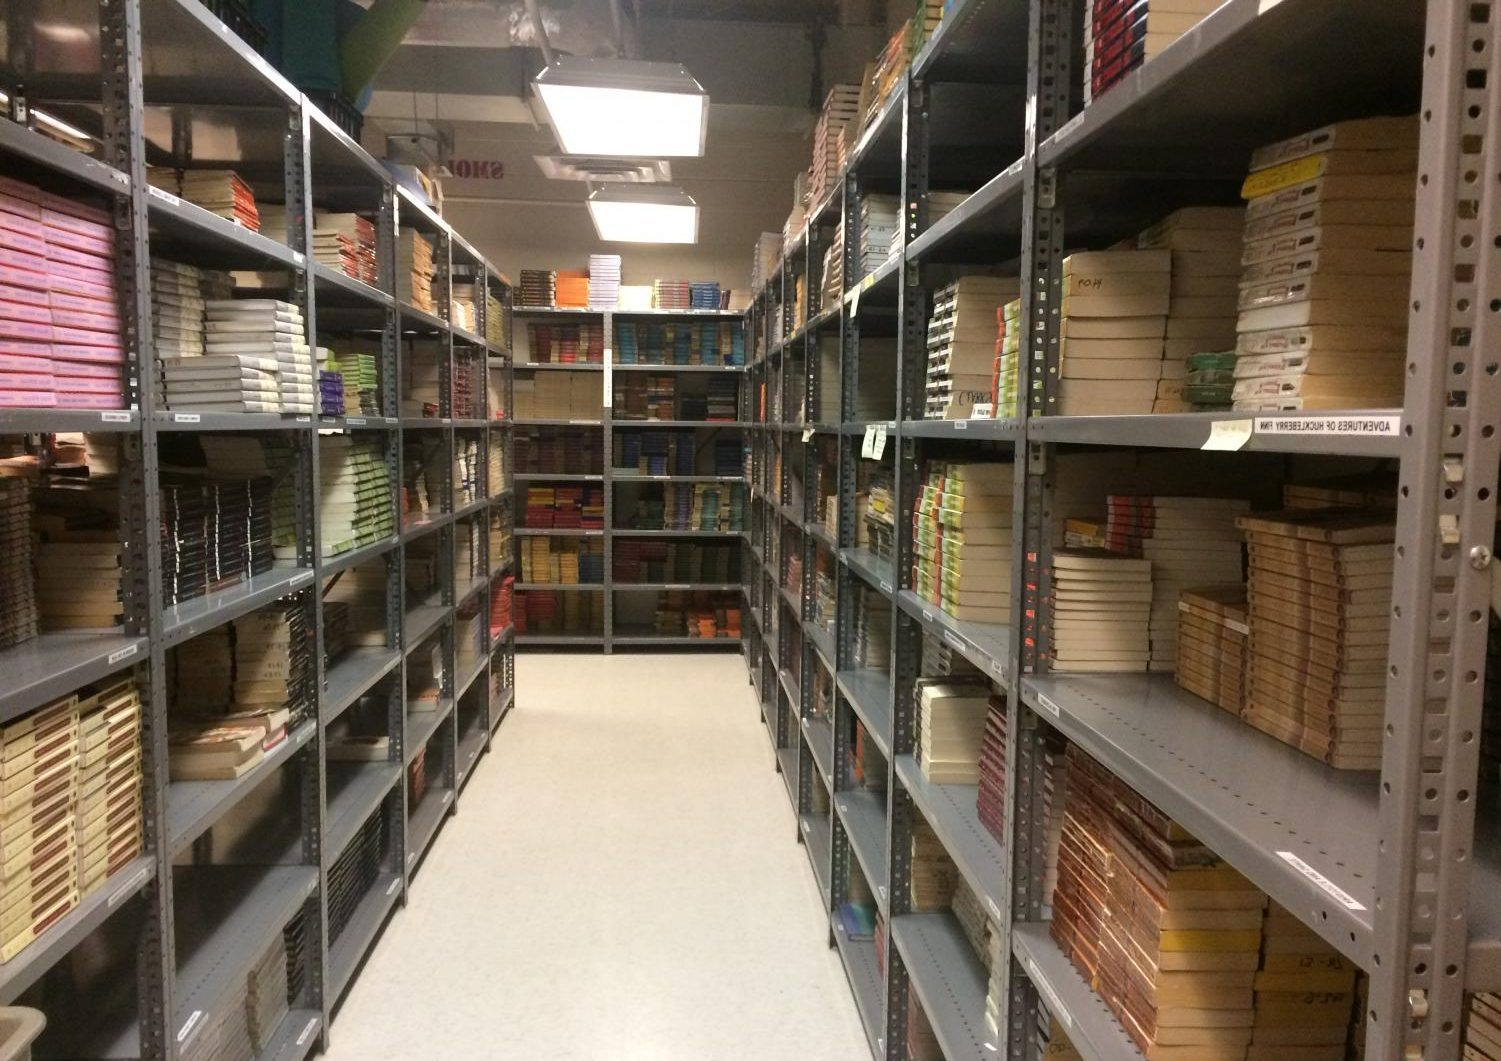 The book room, tucked away in room 259, houses copies of the books in the English curriculum. One section is dedicated solely to Shakespeare.